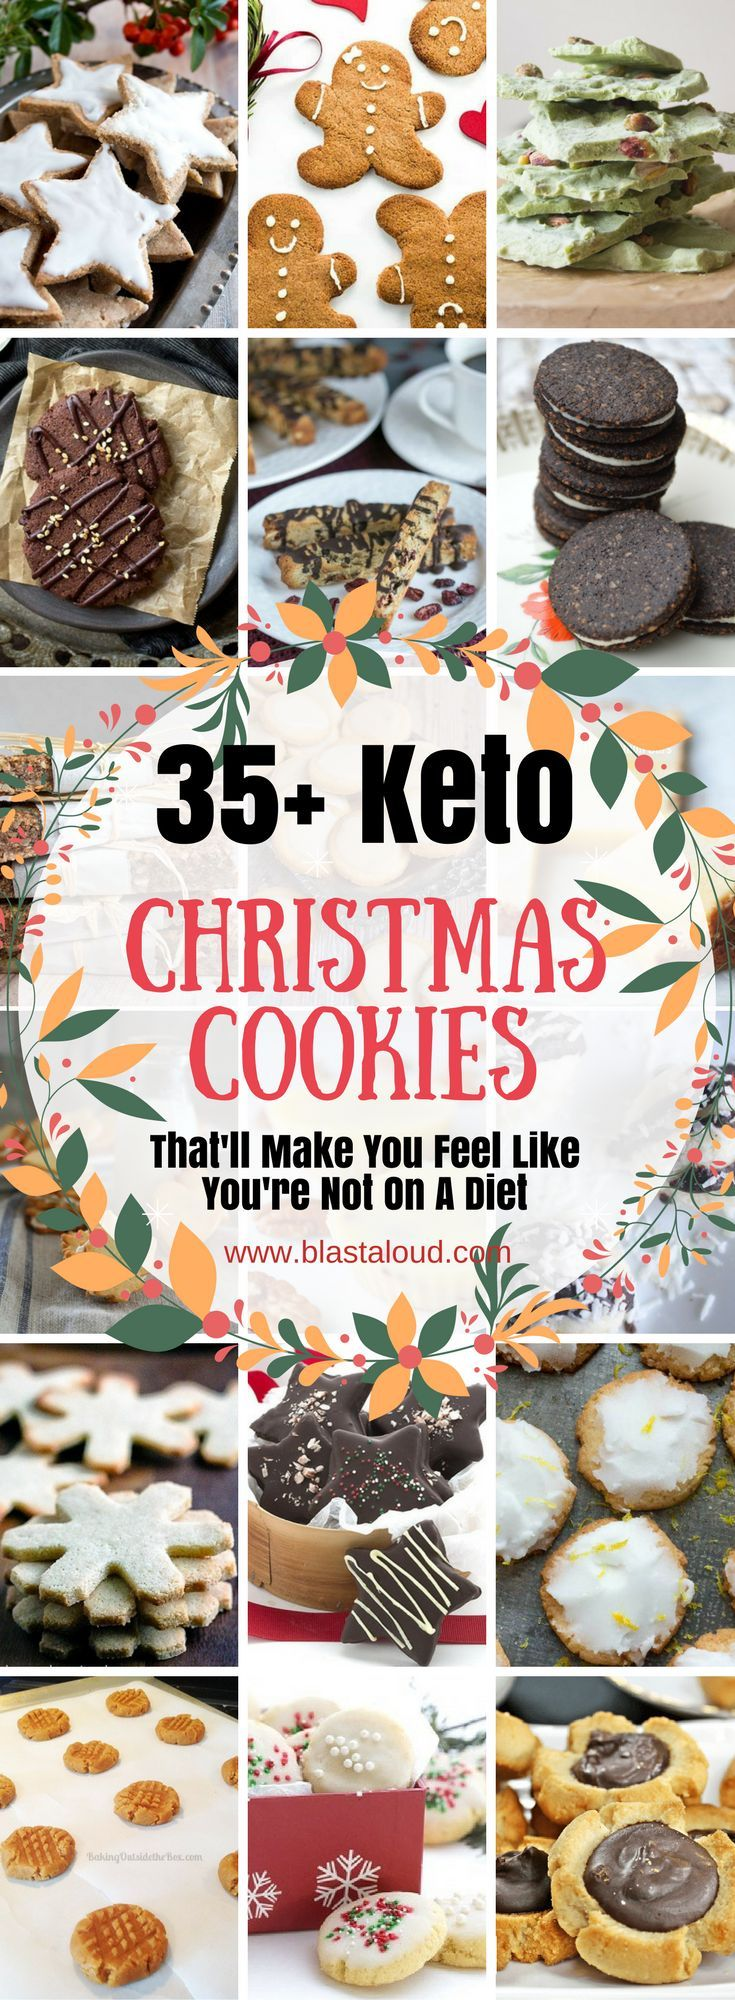 Wow these Keto Christmas Cookies are amazing! You should definitely try these if you're trying to stick to a diet or trying to eat healthy this festive season!